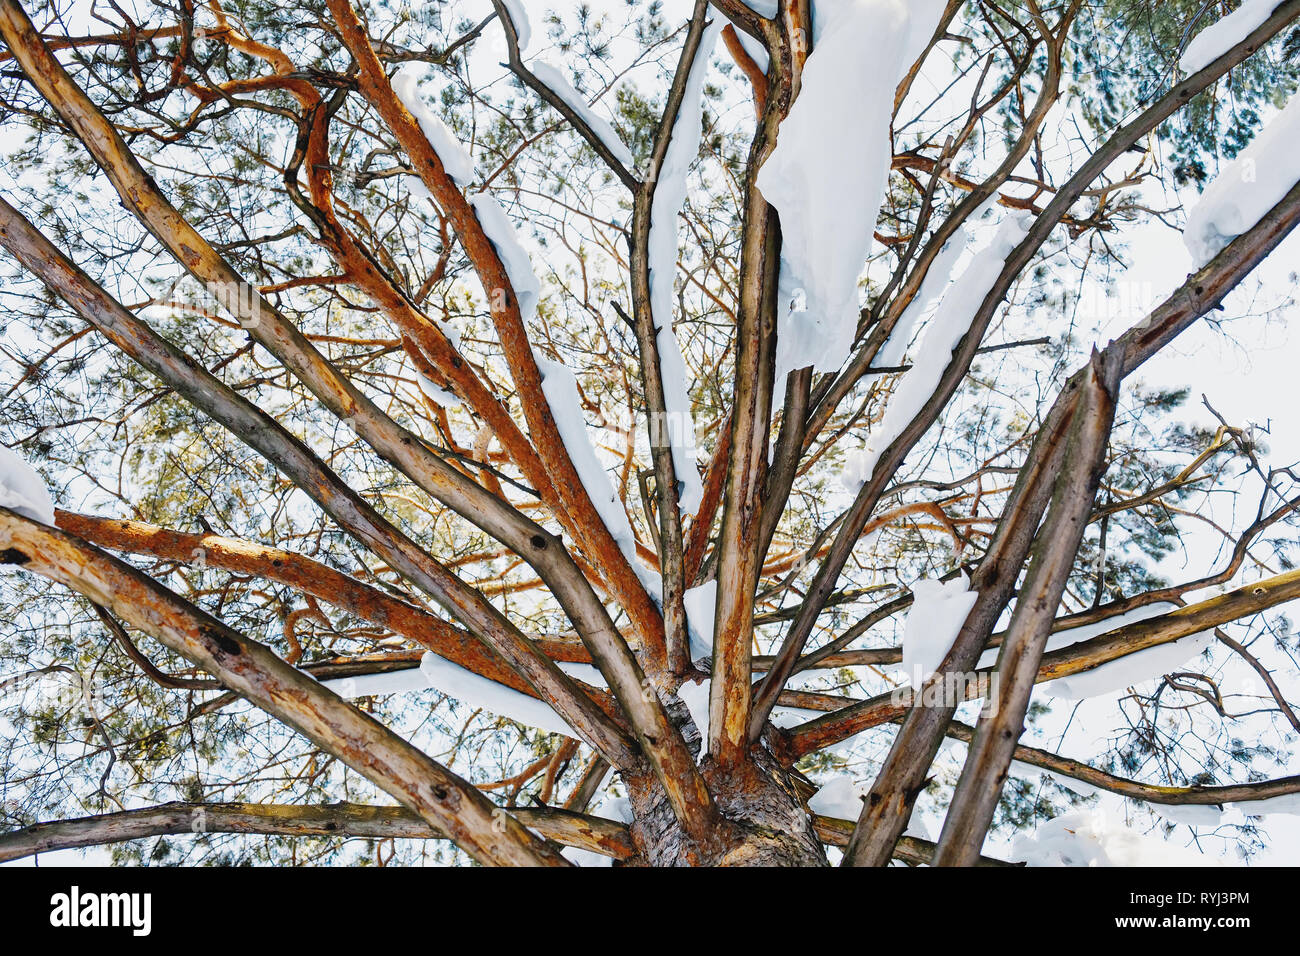 Unusual view of big old pine tree, from bottom to top, winter scene - Stock Image